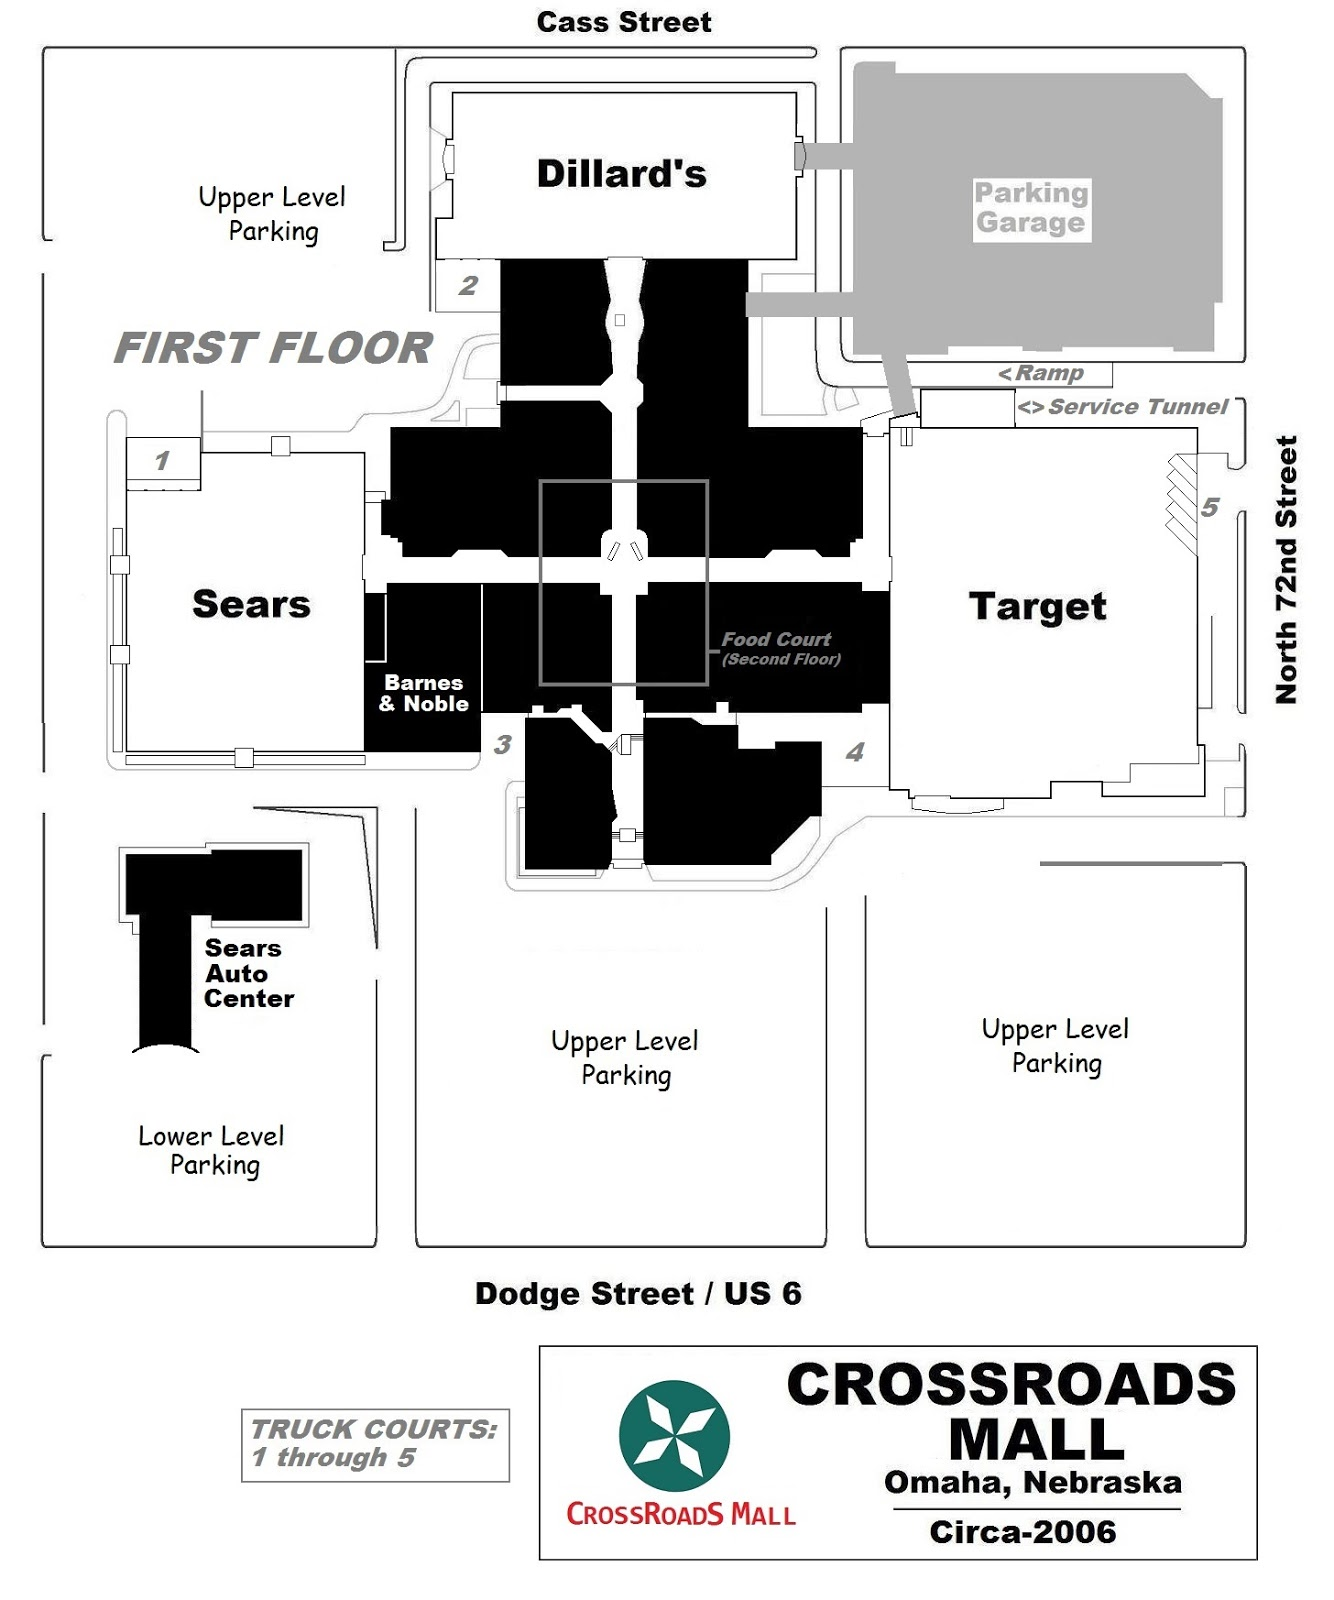 Crossroads Mall Omaha Ne: MALL HALL OF FAME: November 2007